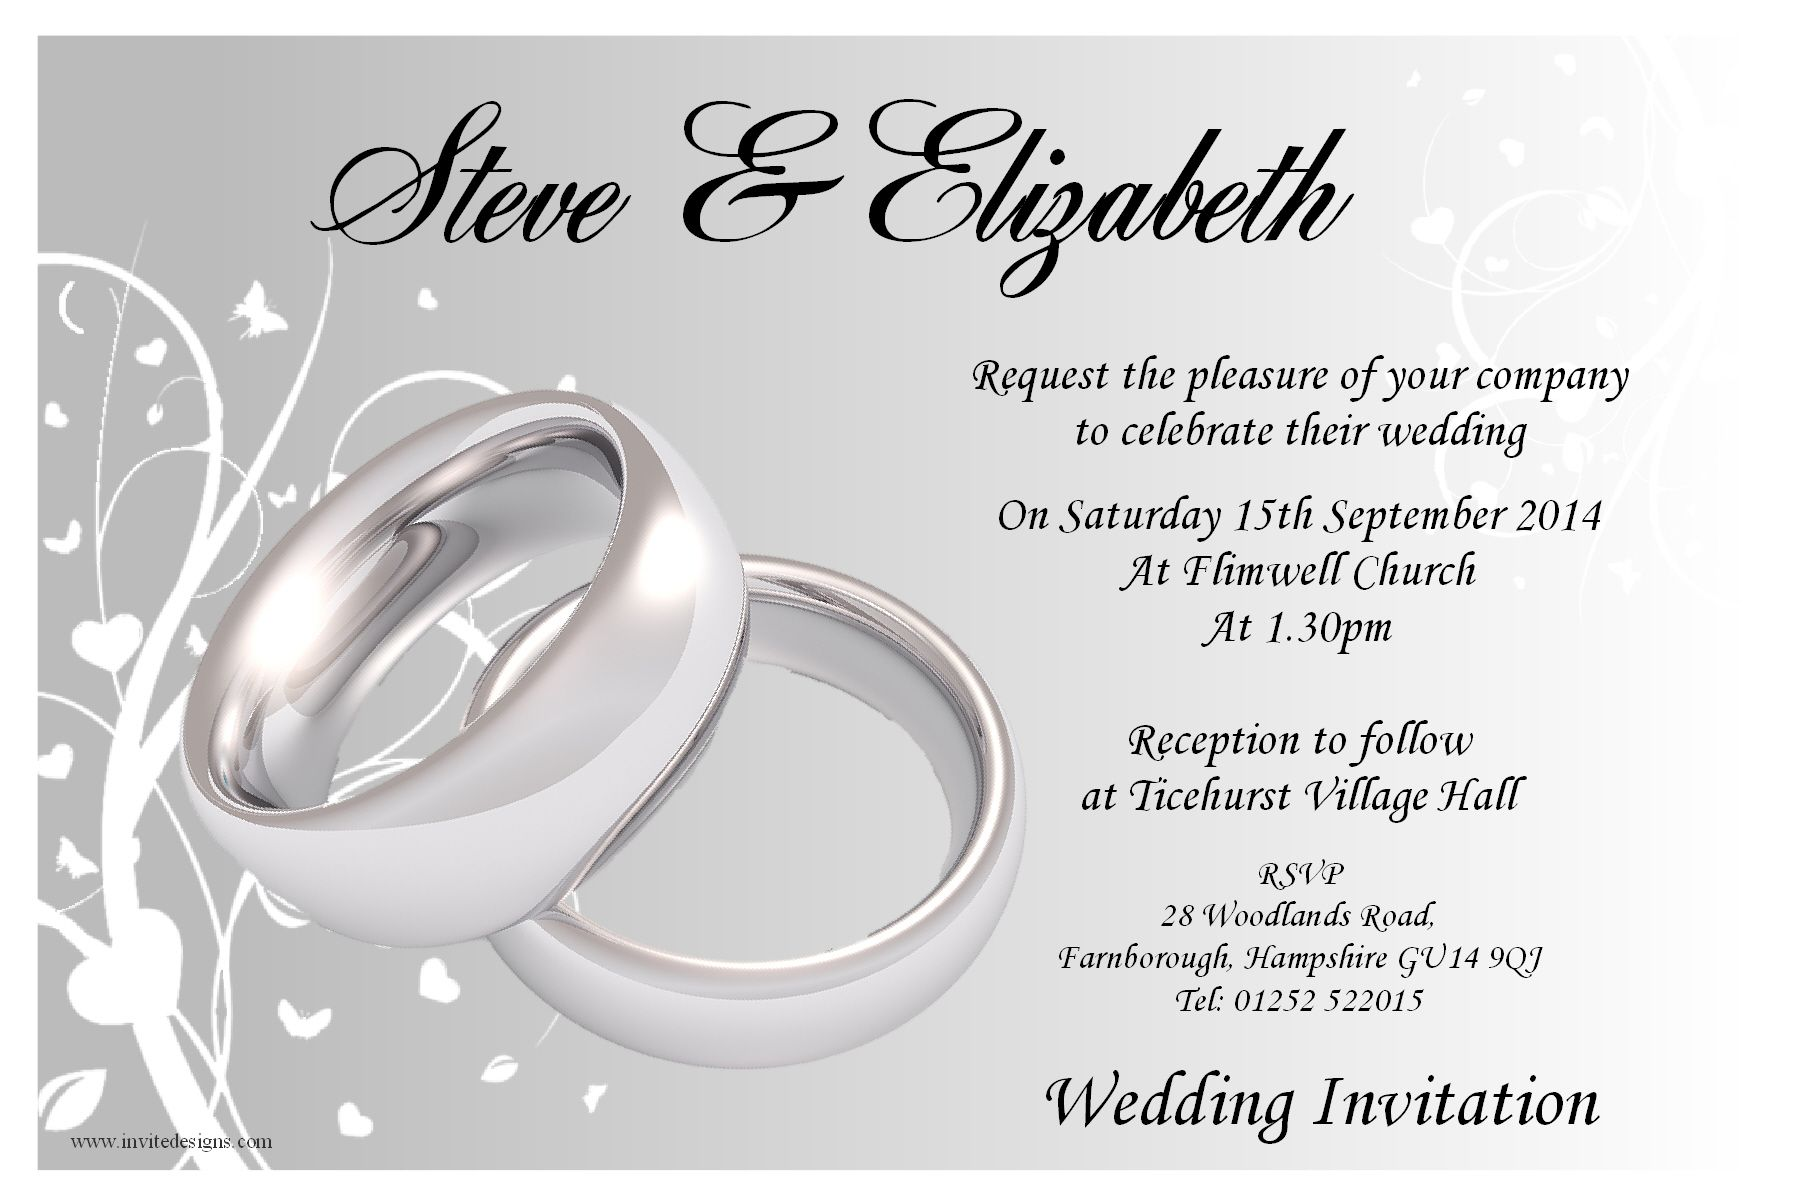 Civil Wedding Invitations Wording Templates Google Search - Wedding invitation templates: silver wedding invitations templates